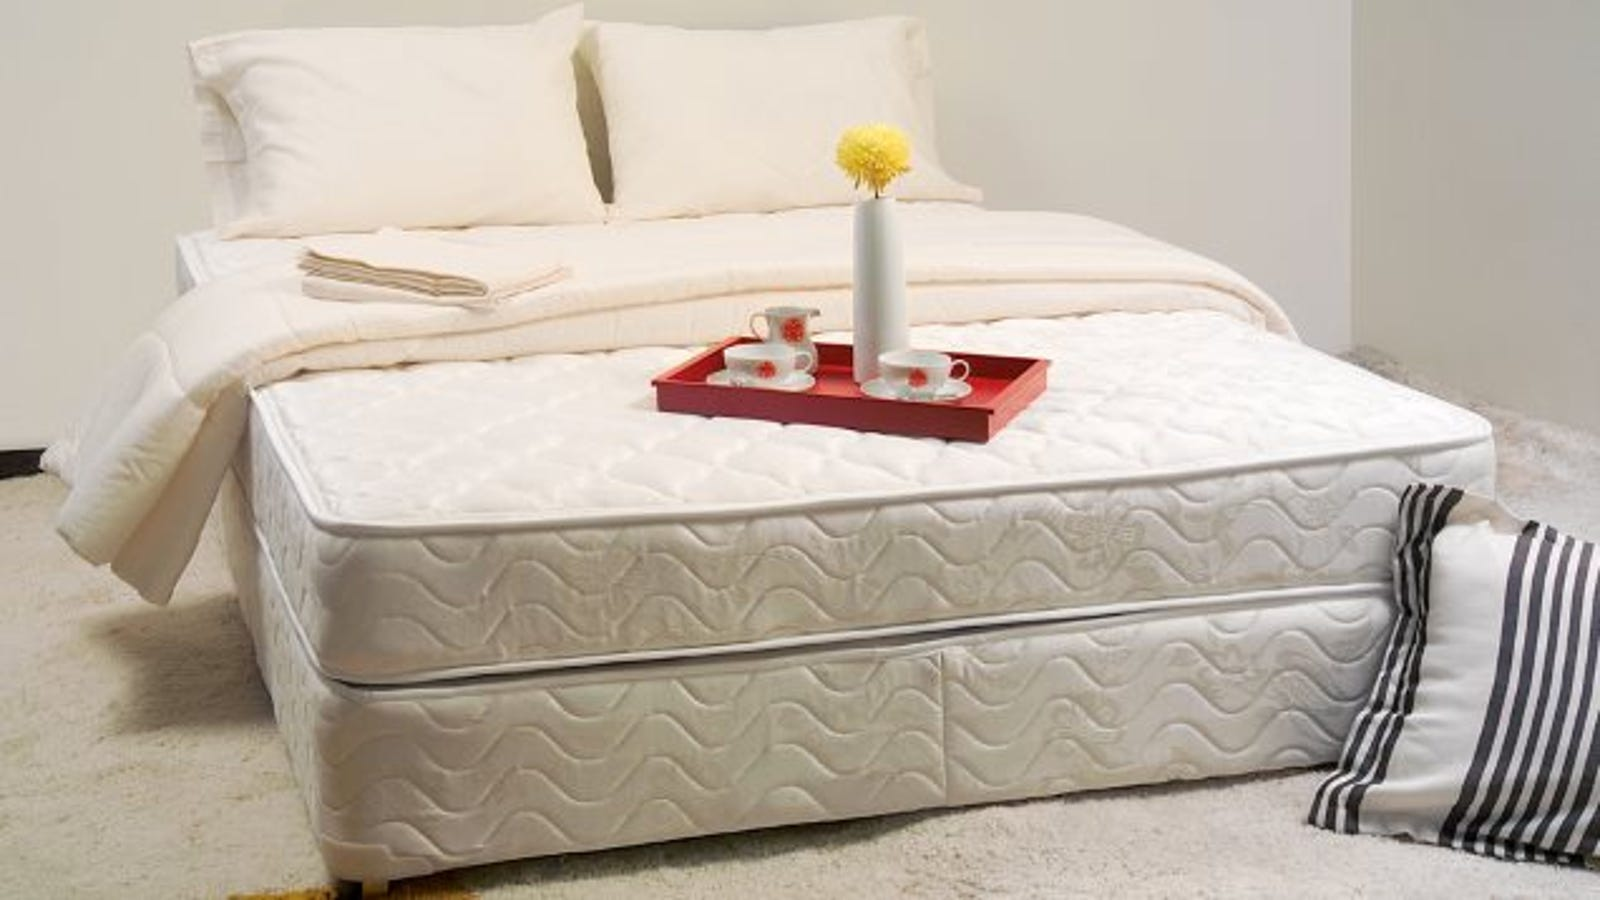 deep clean your mattress with hydrogen peroxide soap and salt